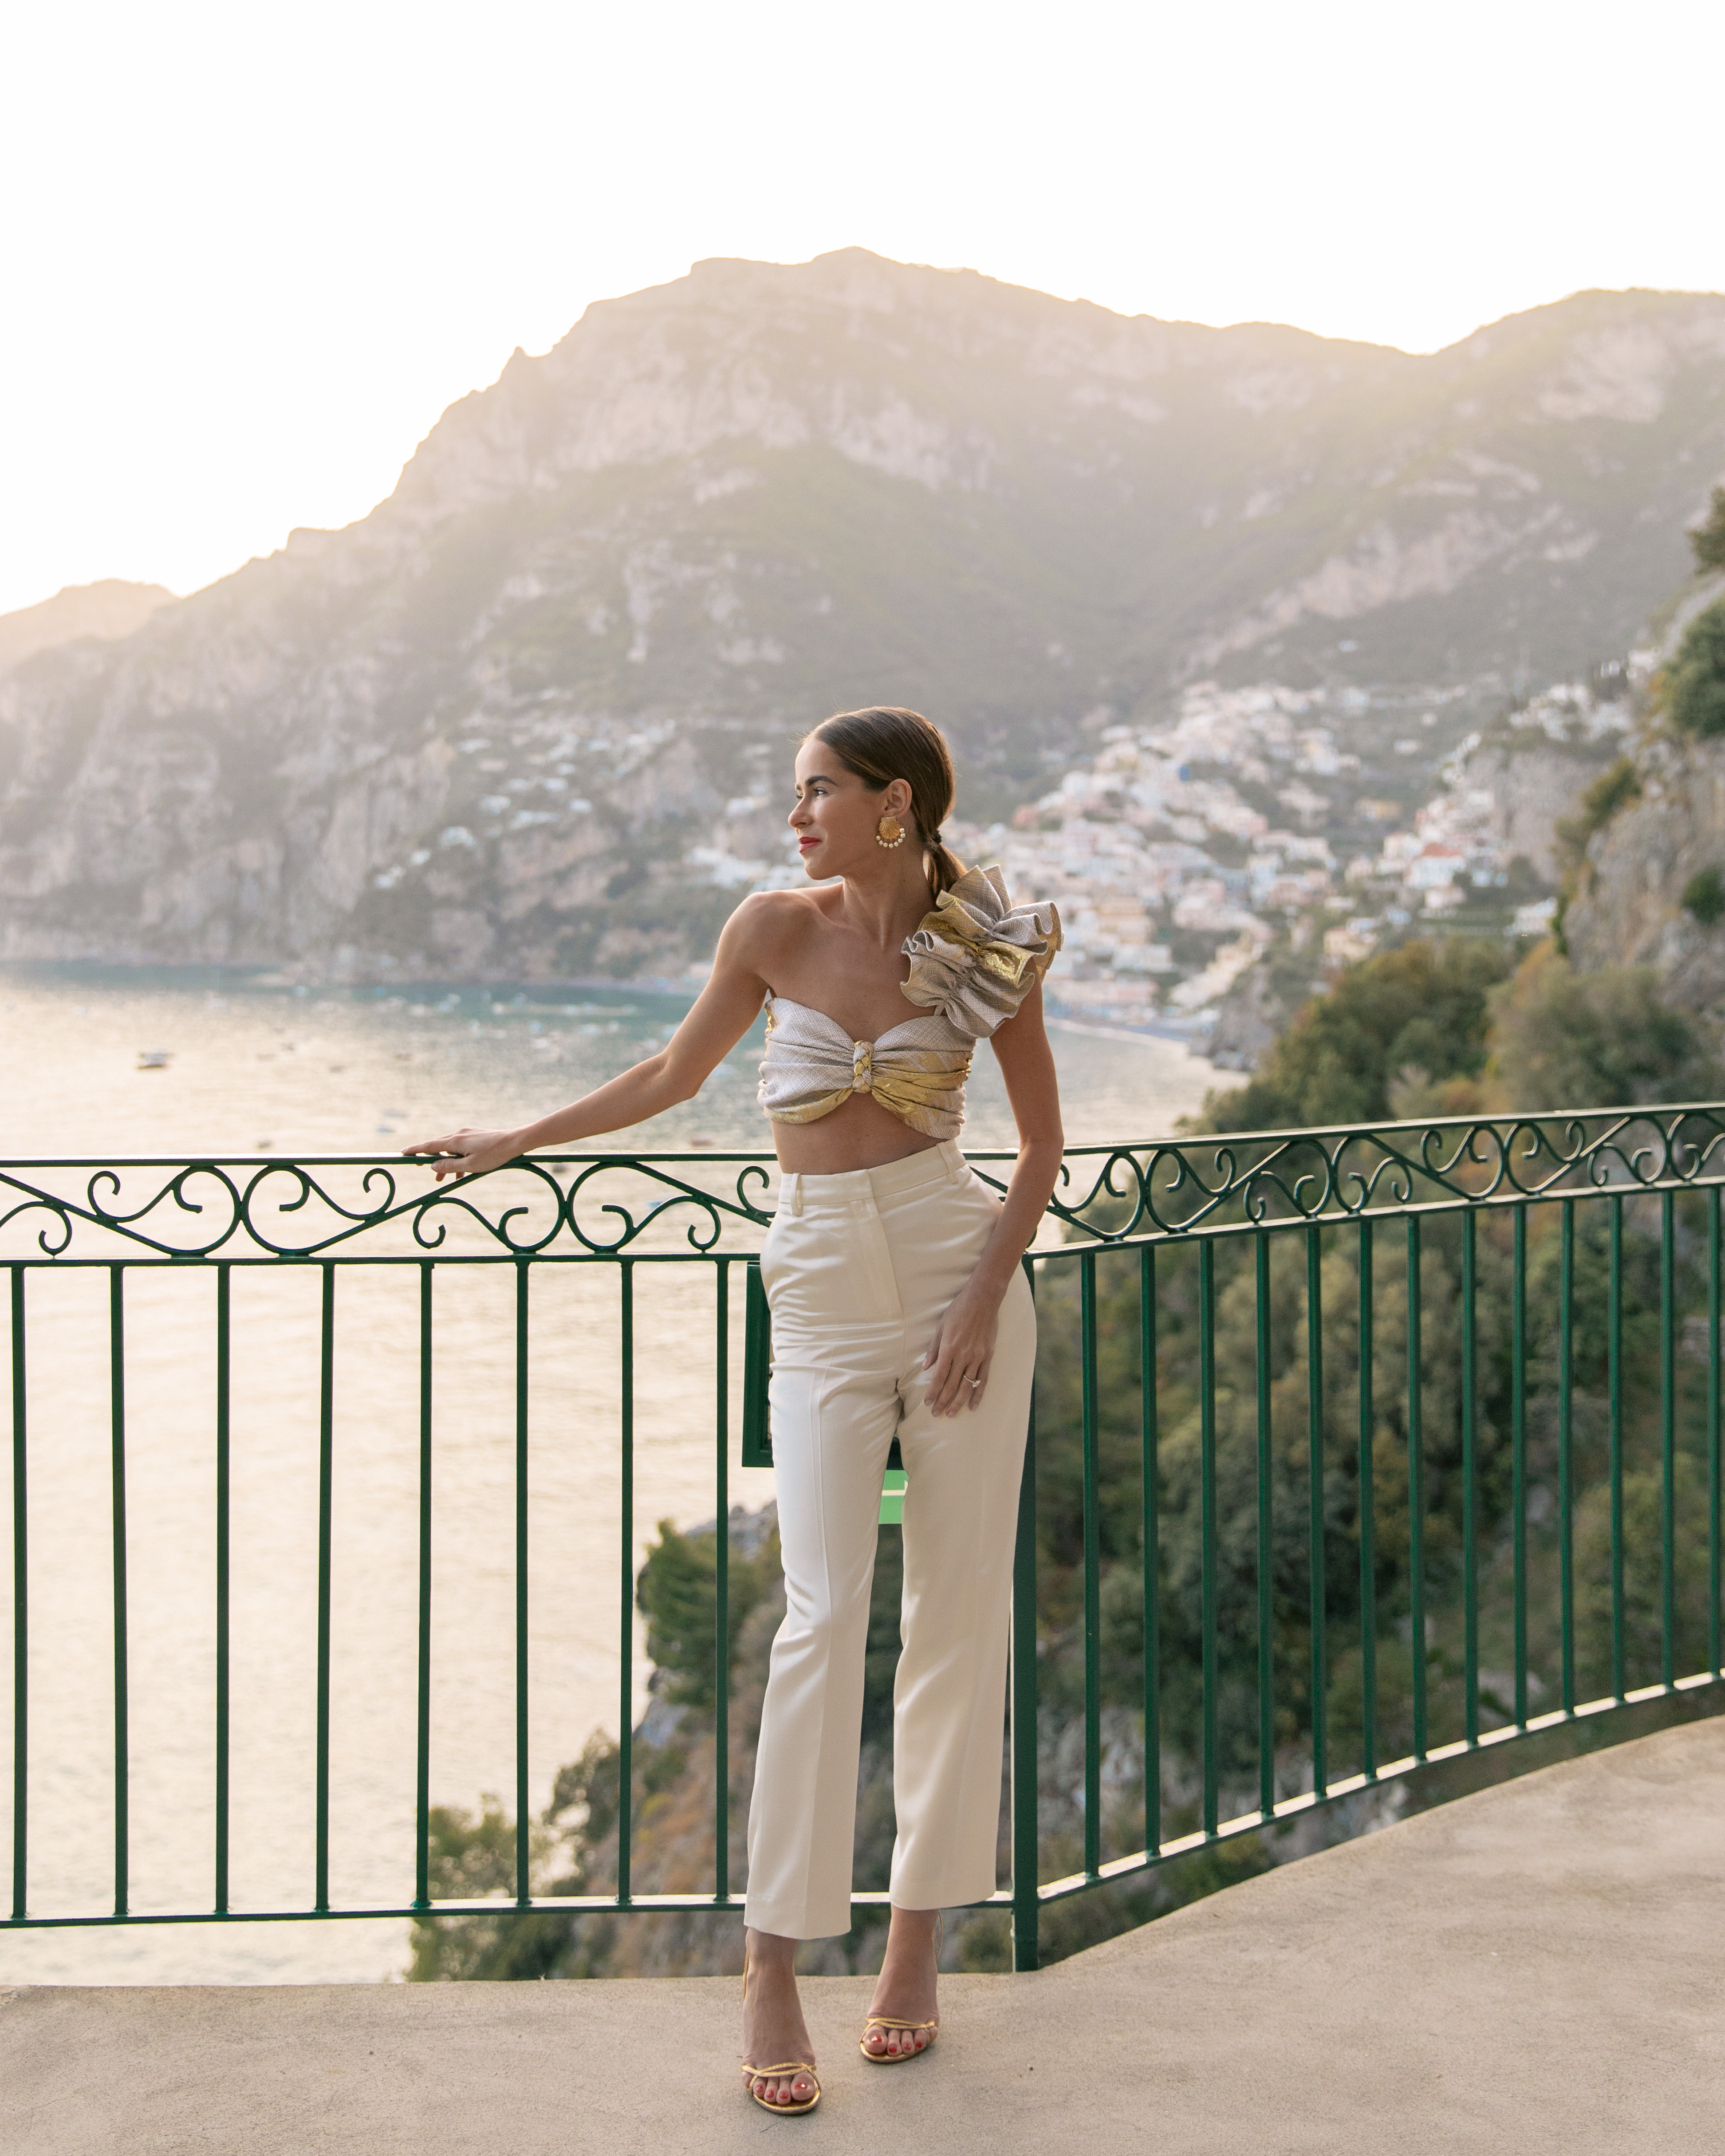 Stephanie Hill from The Style Bungalow shares her Amalfi Coast Guide